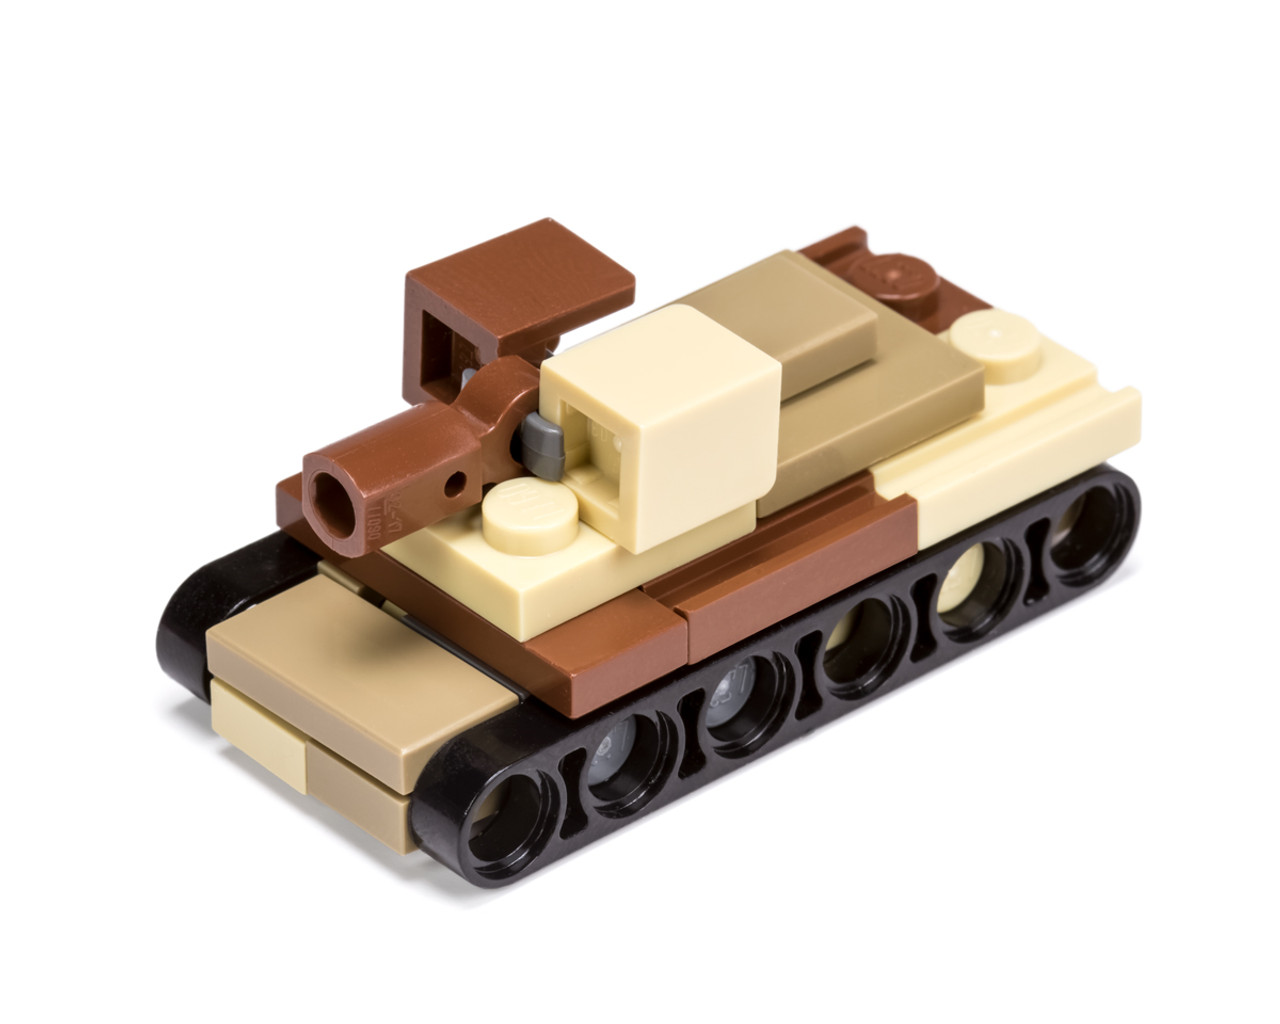 Micro Brick Battle - Type 4 Ho-Ro